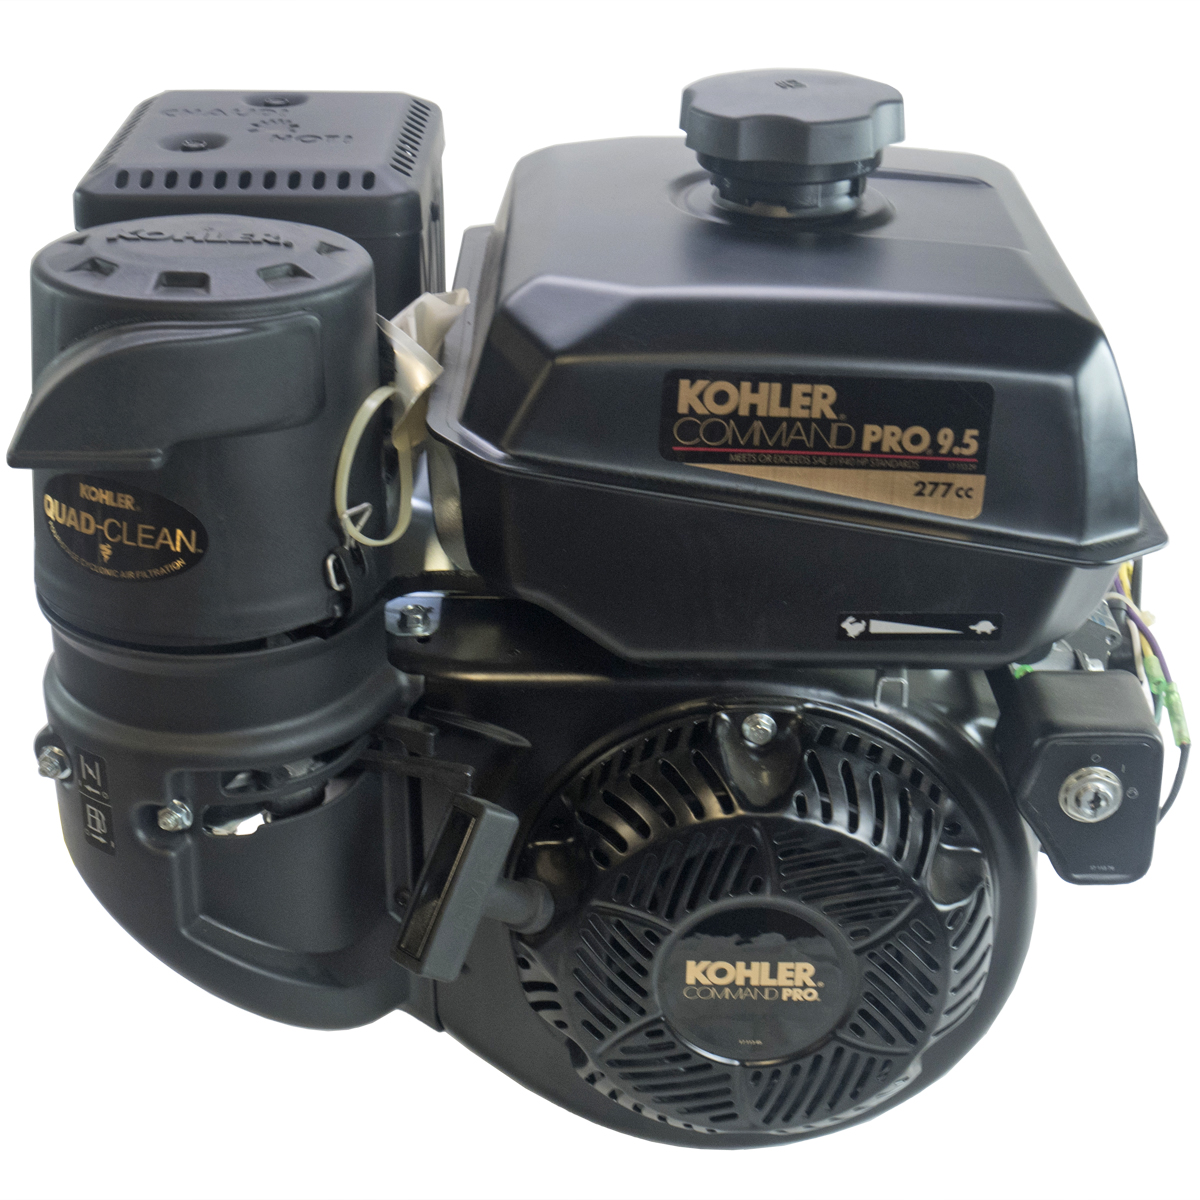 9.5HP Command Pro, 2:1 Wet Clutch Gear Reduction Horizontal 25mm Shaft, Recoil and Electric Start, OHV, CIS, Cyclonic Air Kohler Engine